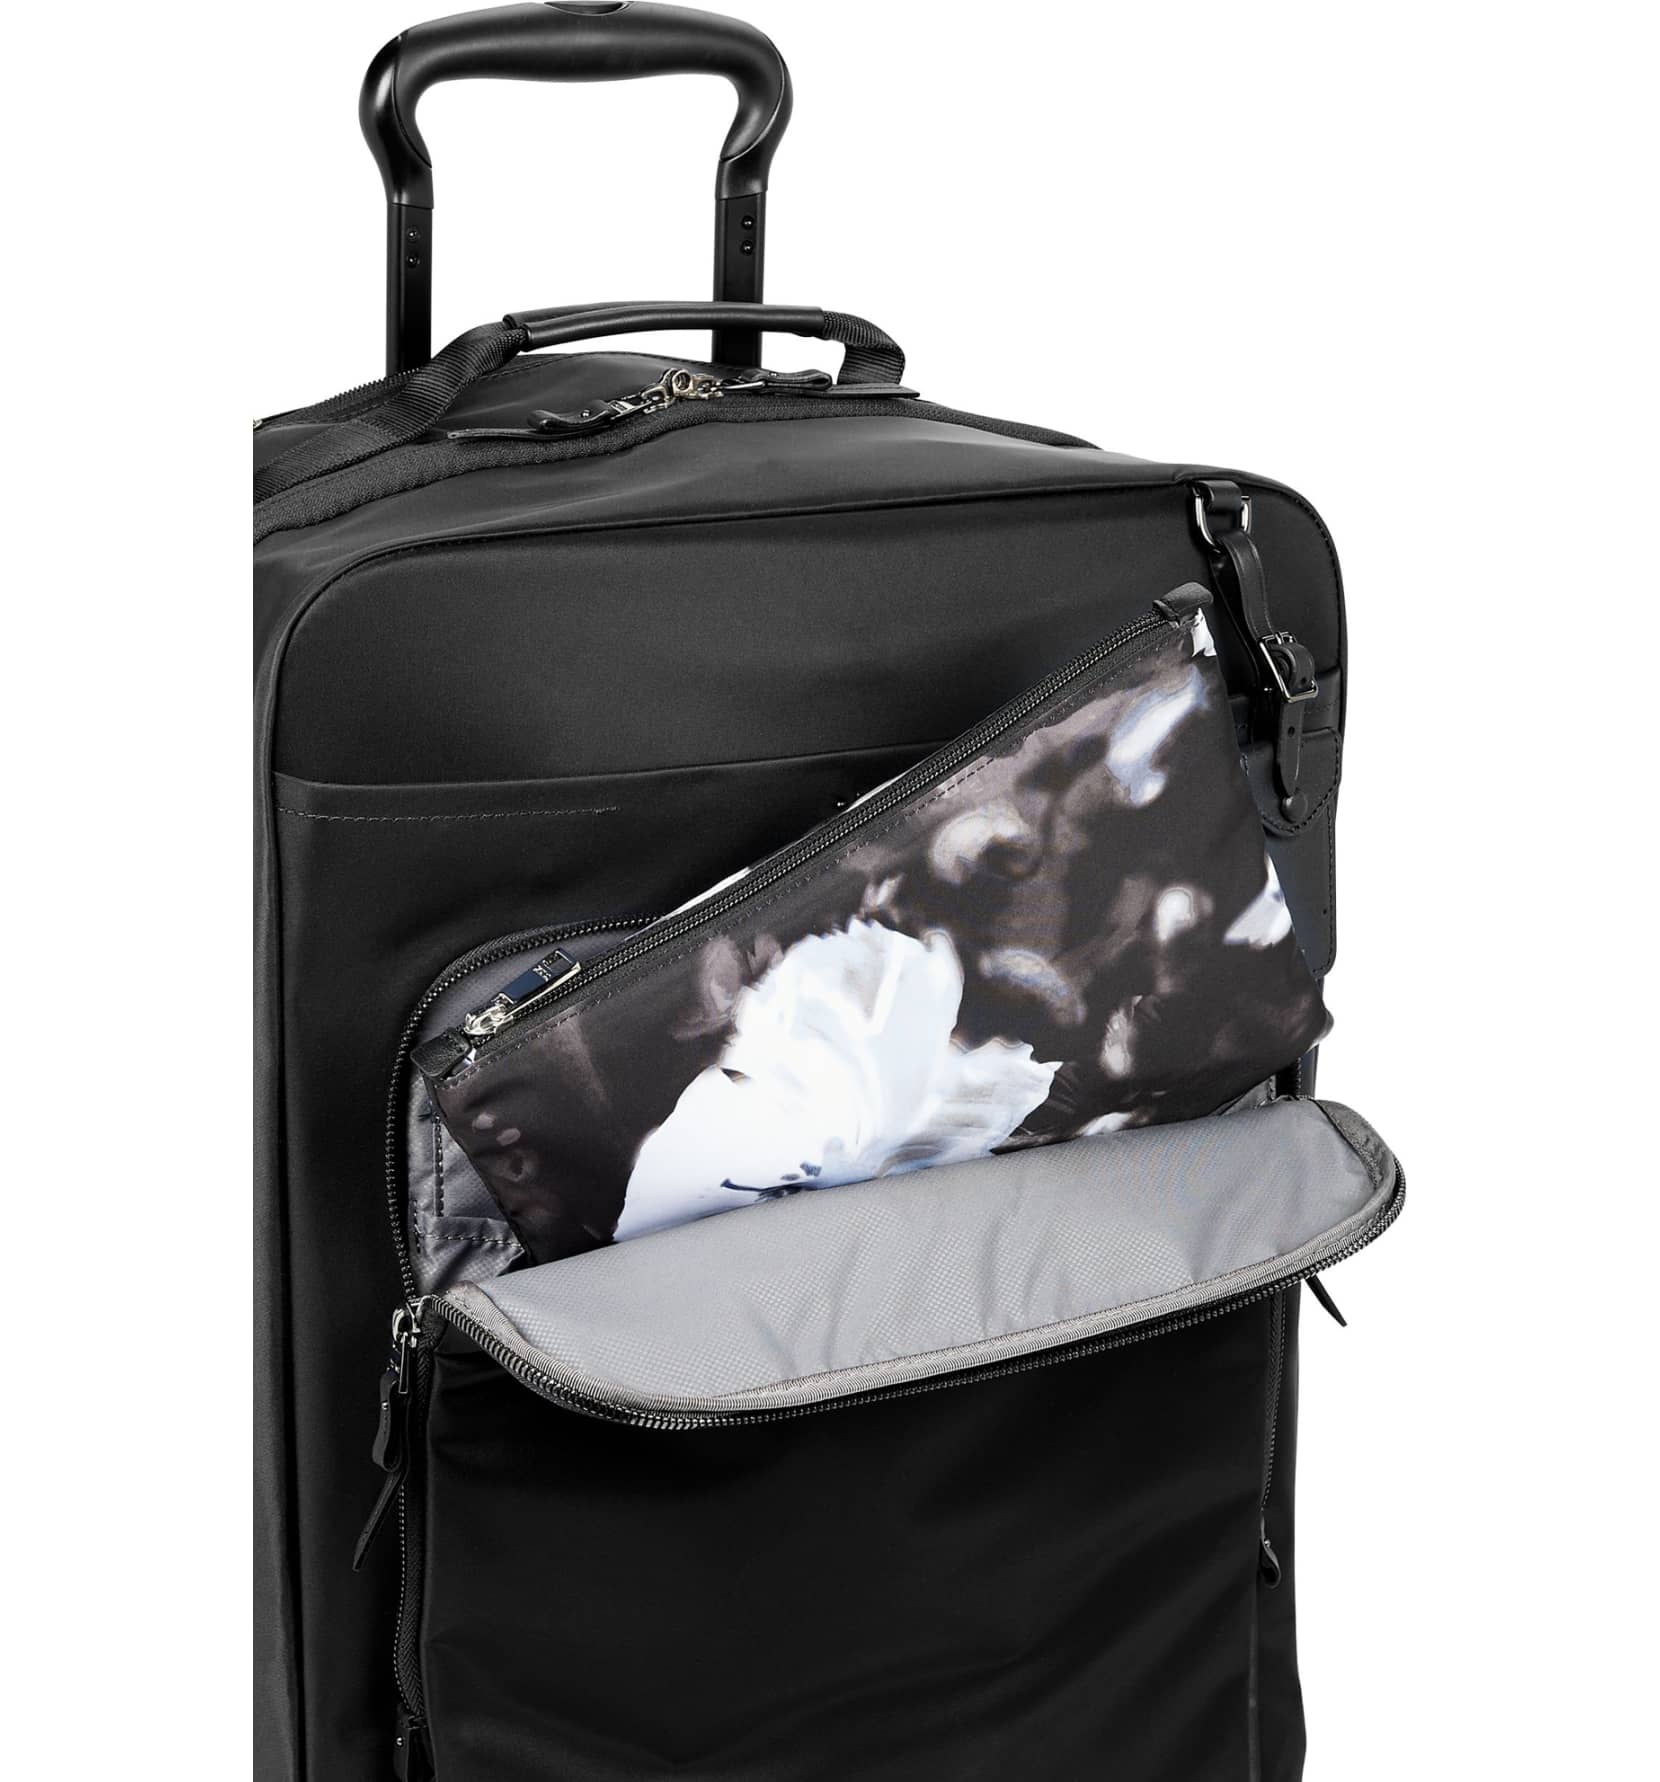 shop this expandable travel bag for your fall getaways. Black Bedroom Furniture Sets. Home Design Ideas